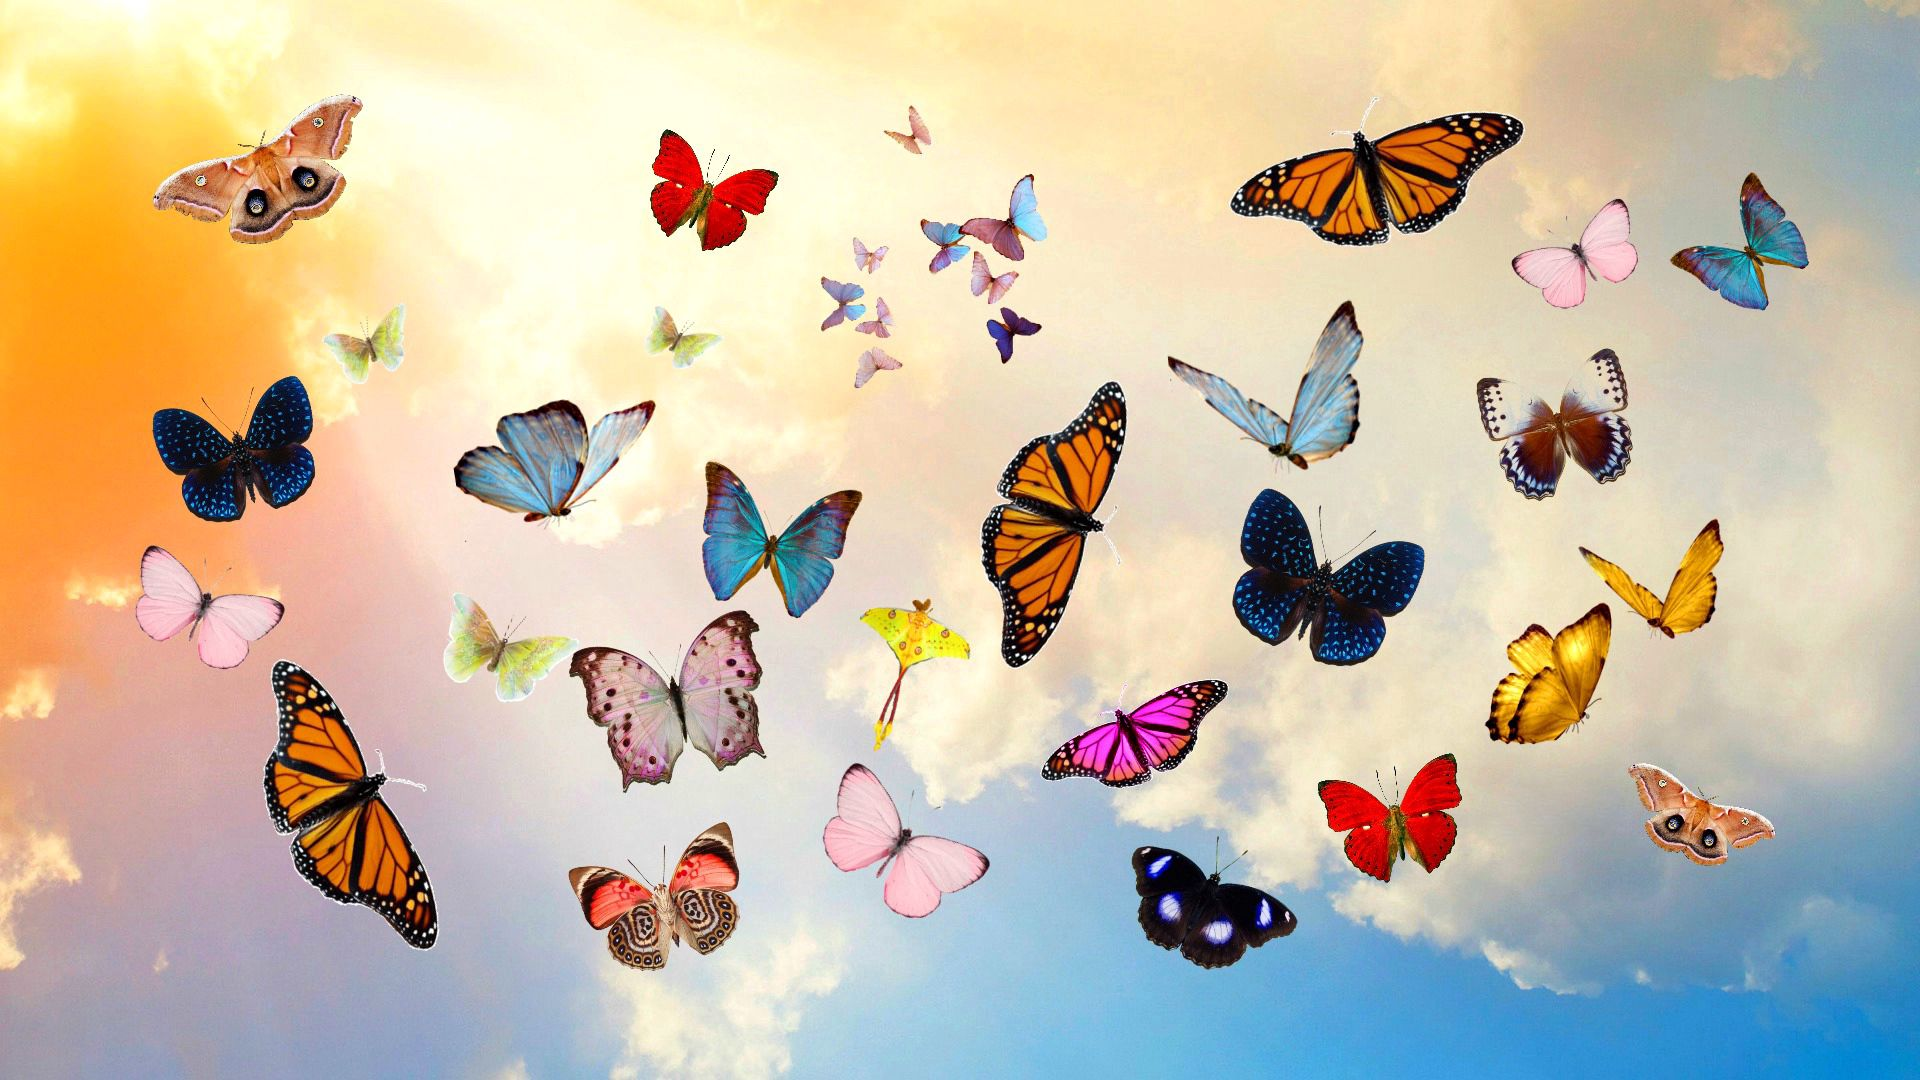 97275 download wallpaper Butterflies, Sky, Miscellanea, Miscellaneous, Collage, Photoshop screensavers and pictures for free